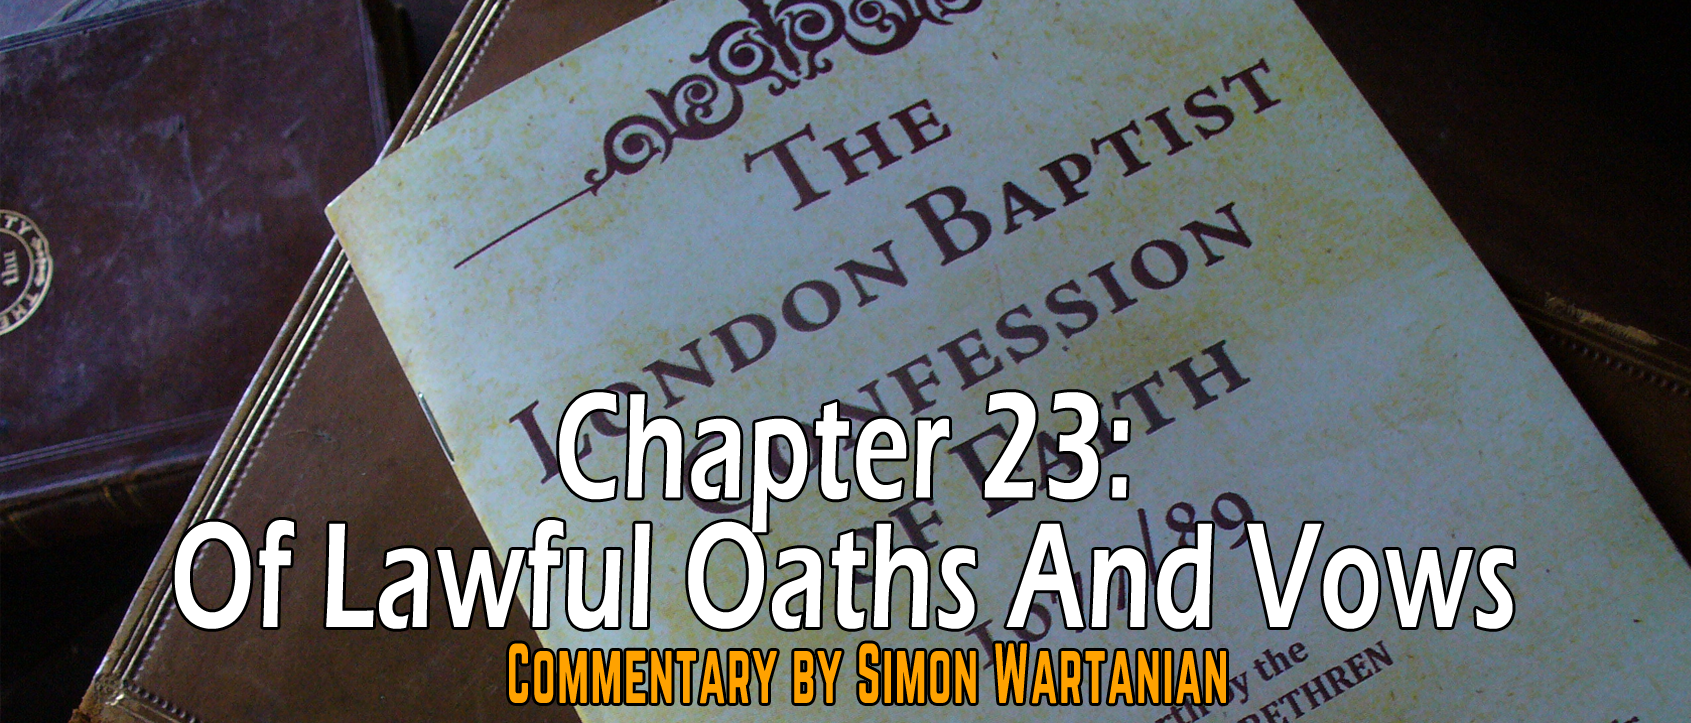 1689 Baptist Confession Chapter 23: Of Lawful Oaths and Vows - Commentary